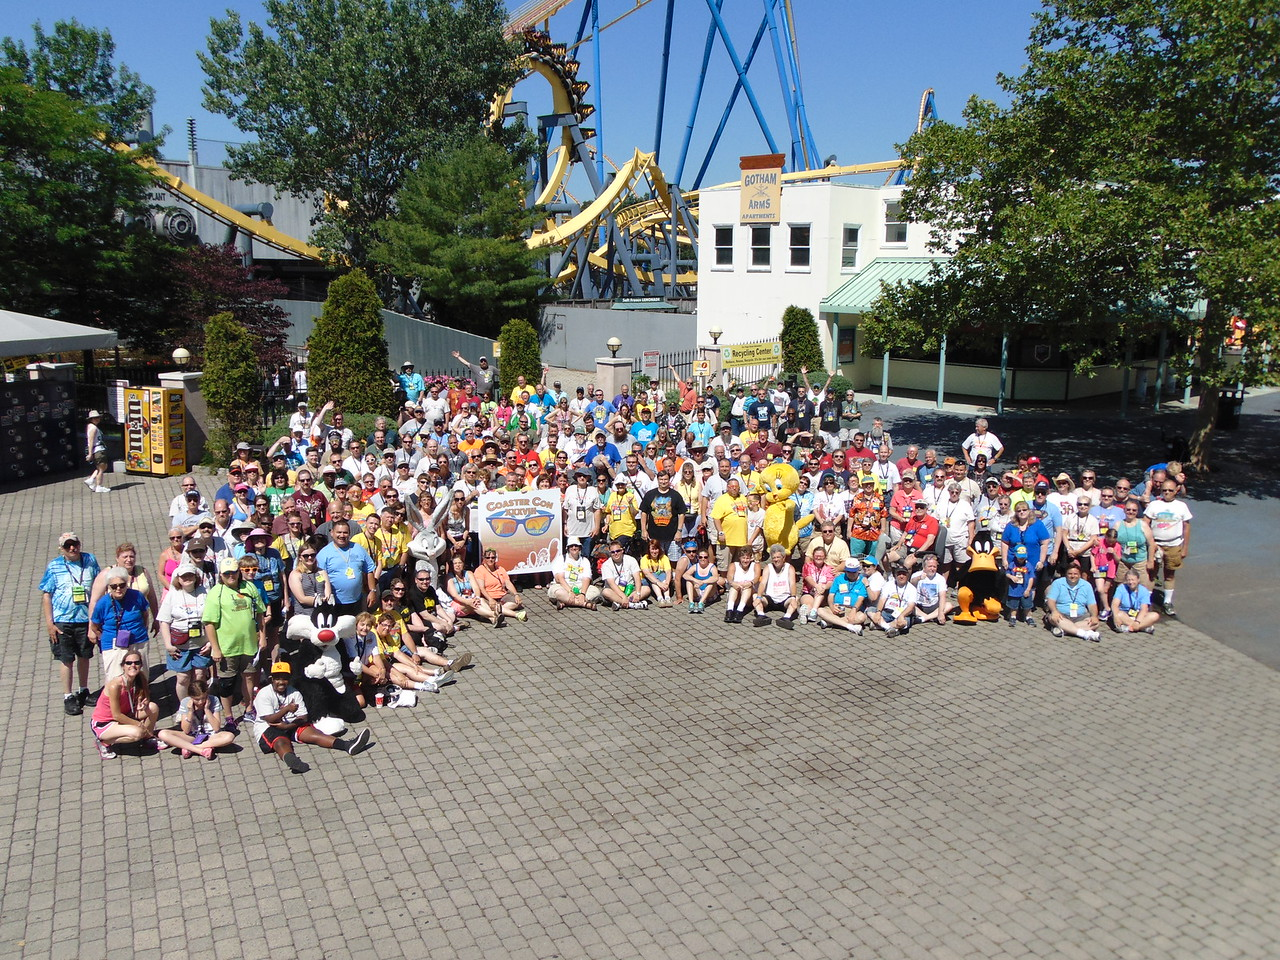 Coaster Con XXXVIII, held June 21 to 26 at Six Flags Great Adventure, Storybook Land and Morey's Piers. Photo, by S. Madonna, Horcher,  taken June 22, 2015 at Six Flags Great Adventure